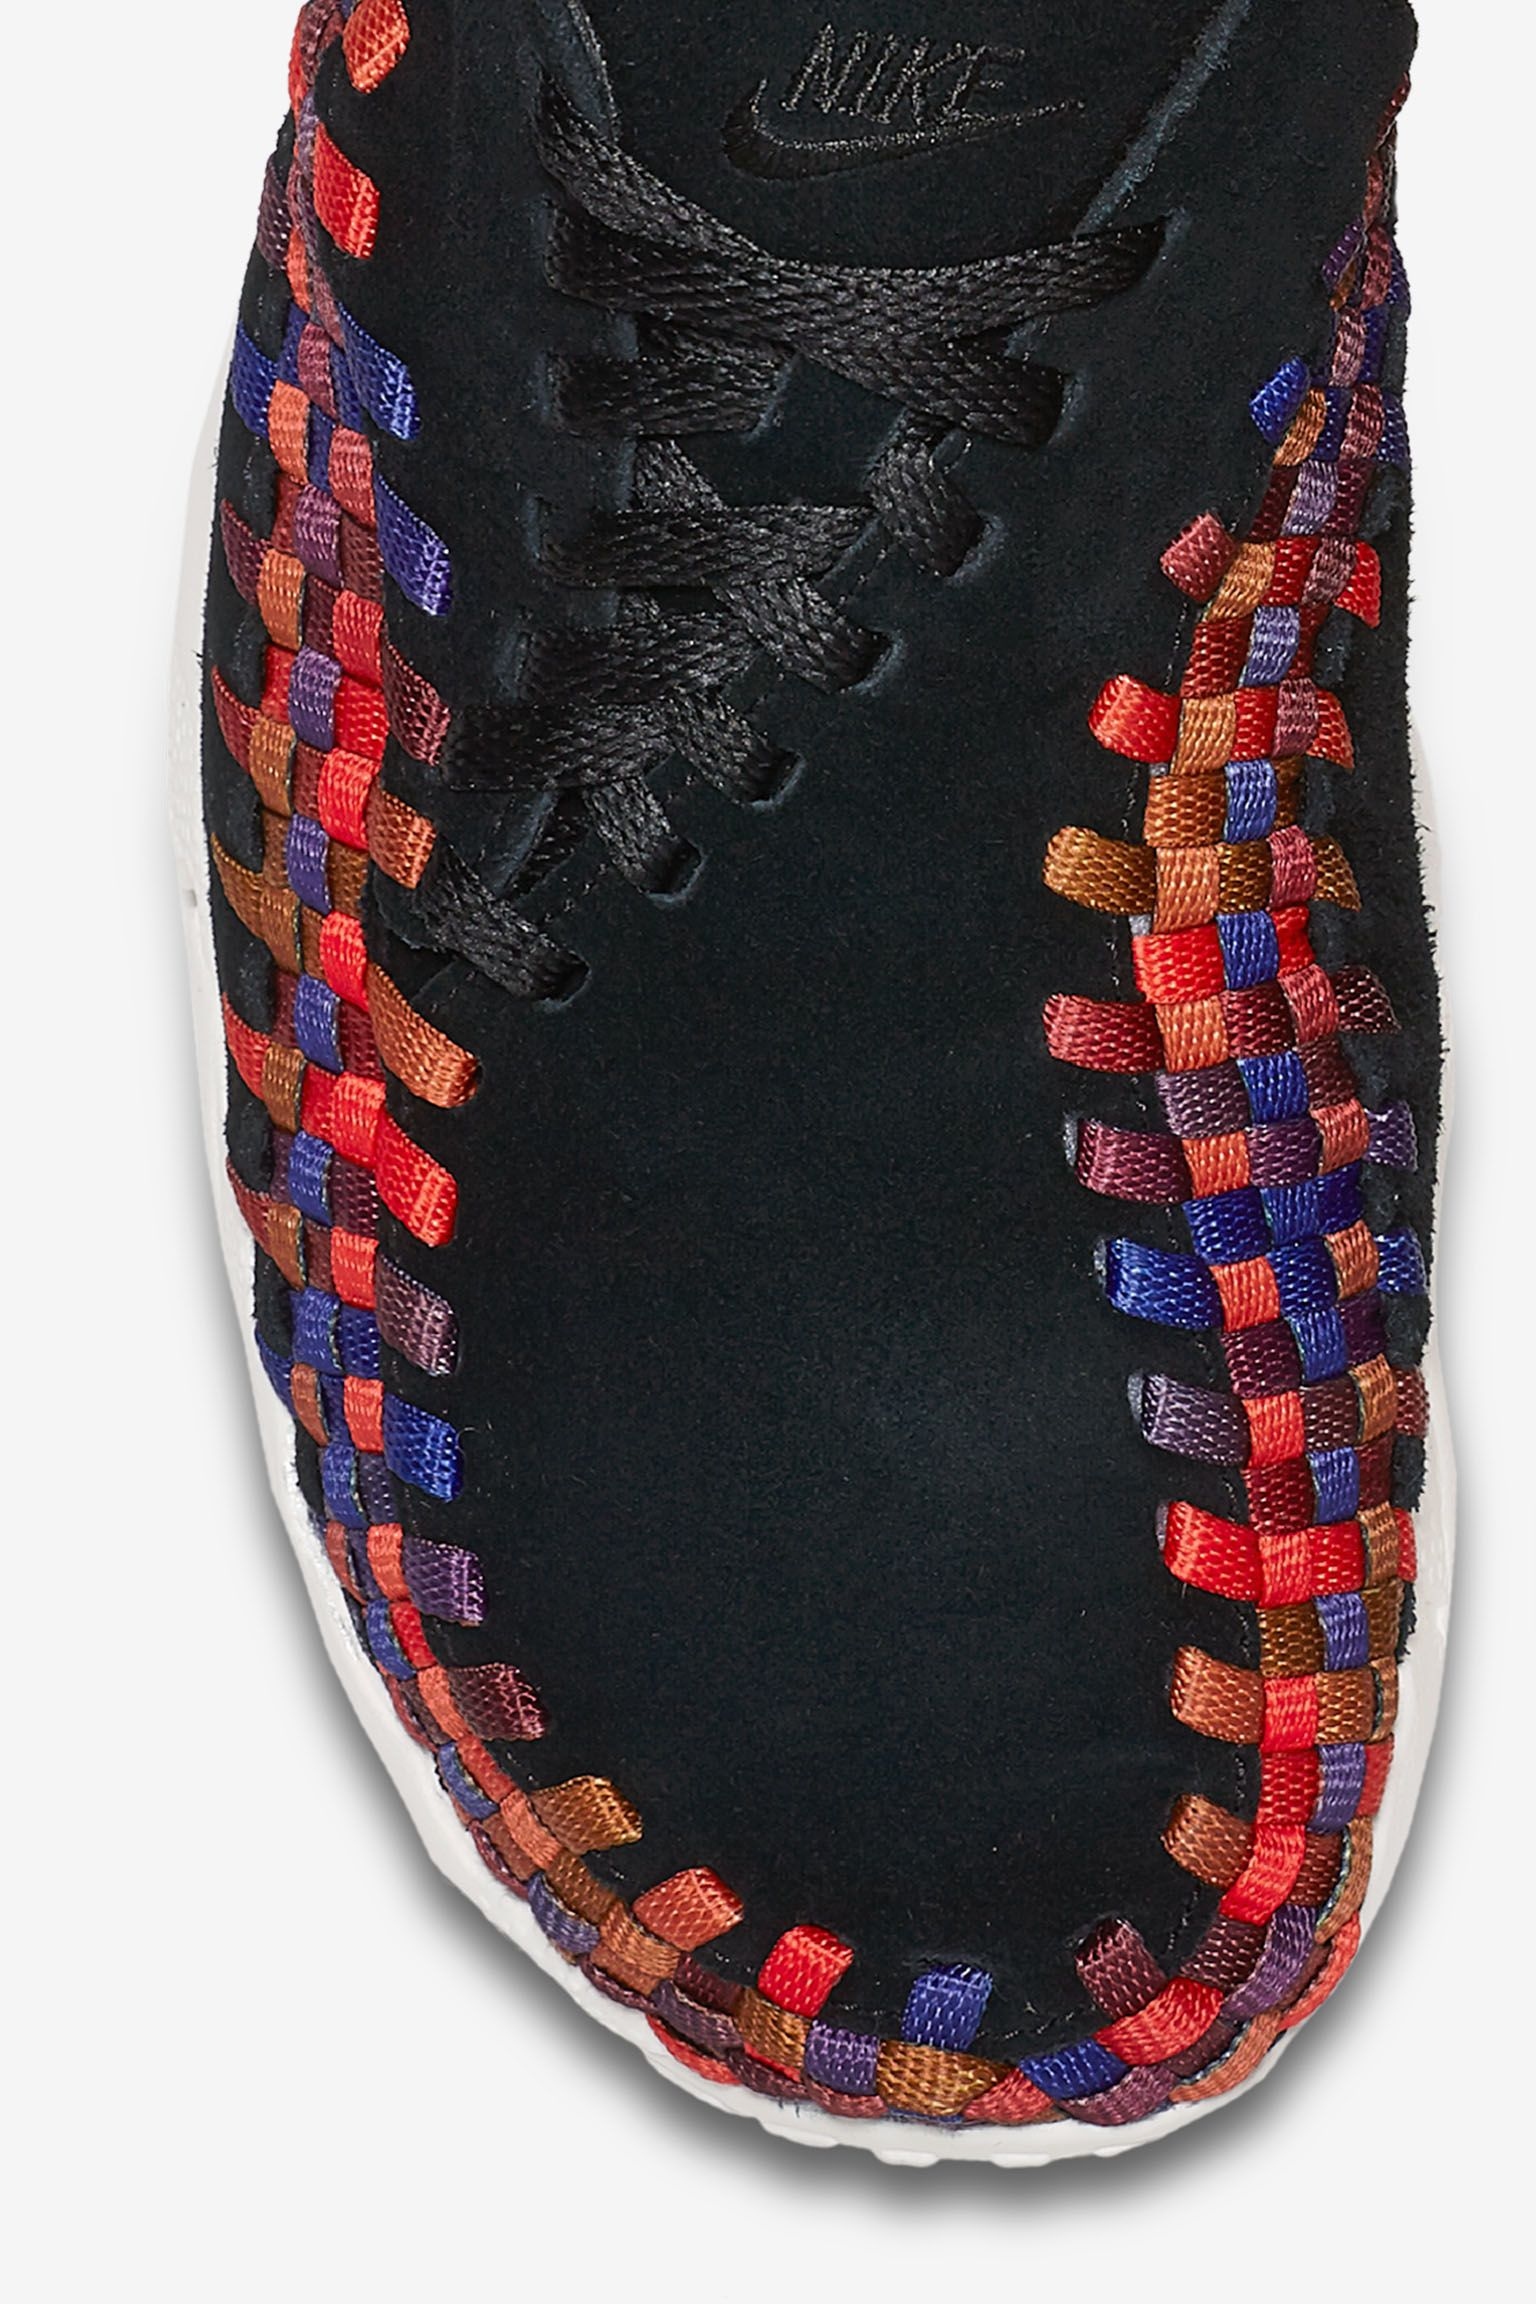 Nike Air Footscape Woven 'Black & Rainbow Weave' Release Date